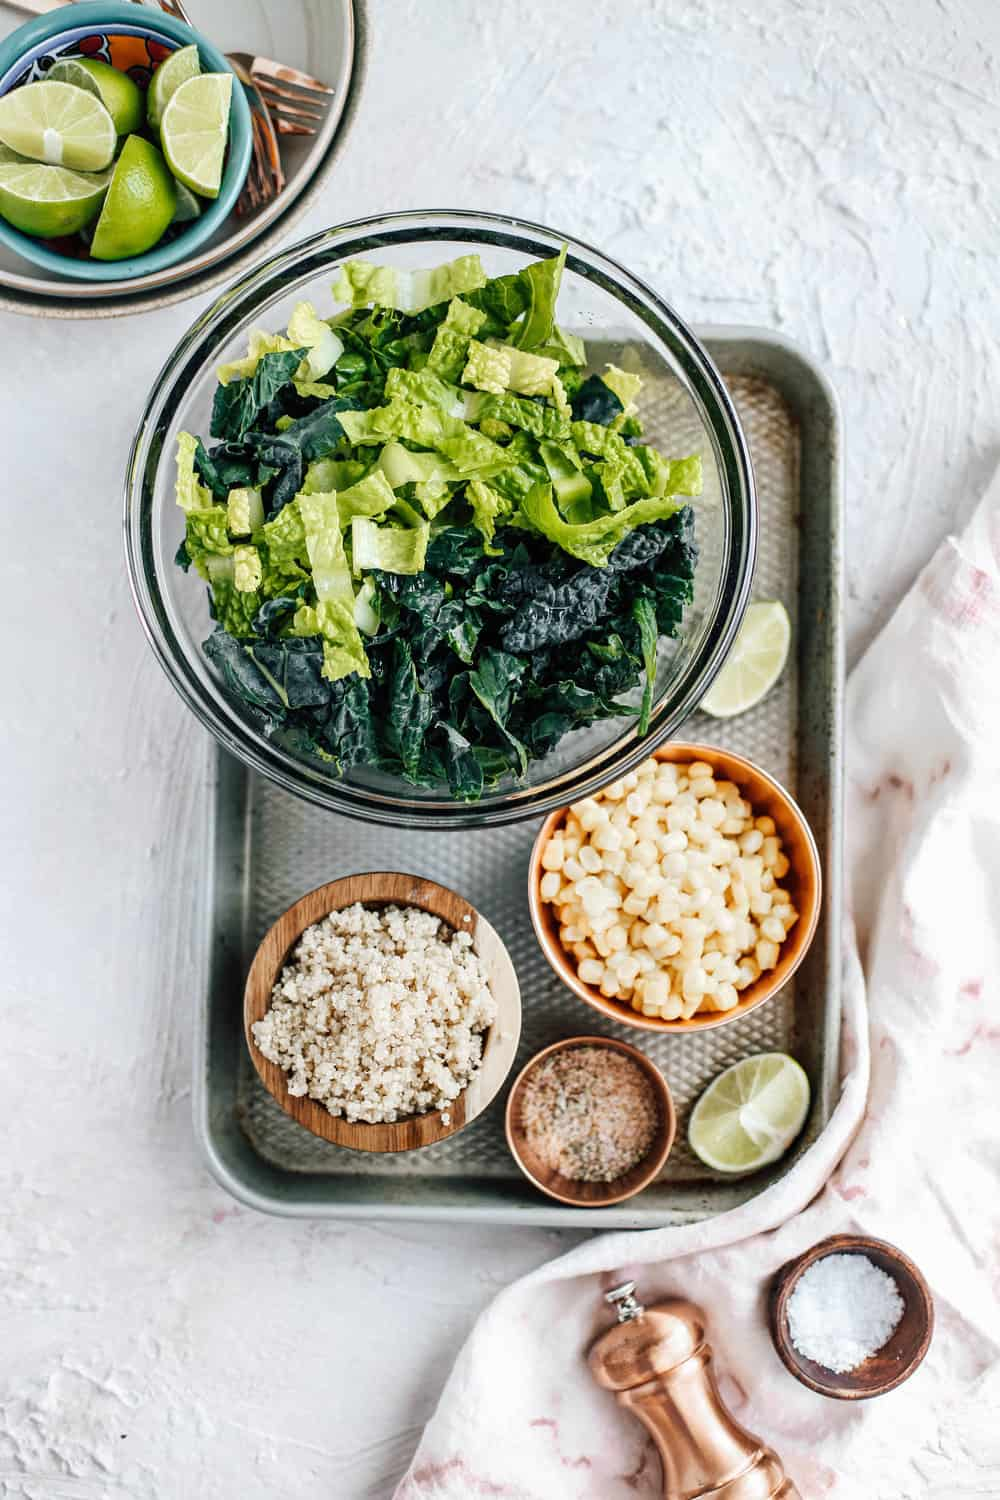 Kale Romaine Golden Corn Quinoa Salt and Lime Salad Ingredients in Mixing Bowls